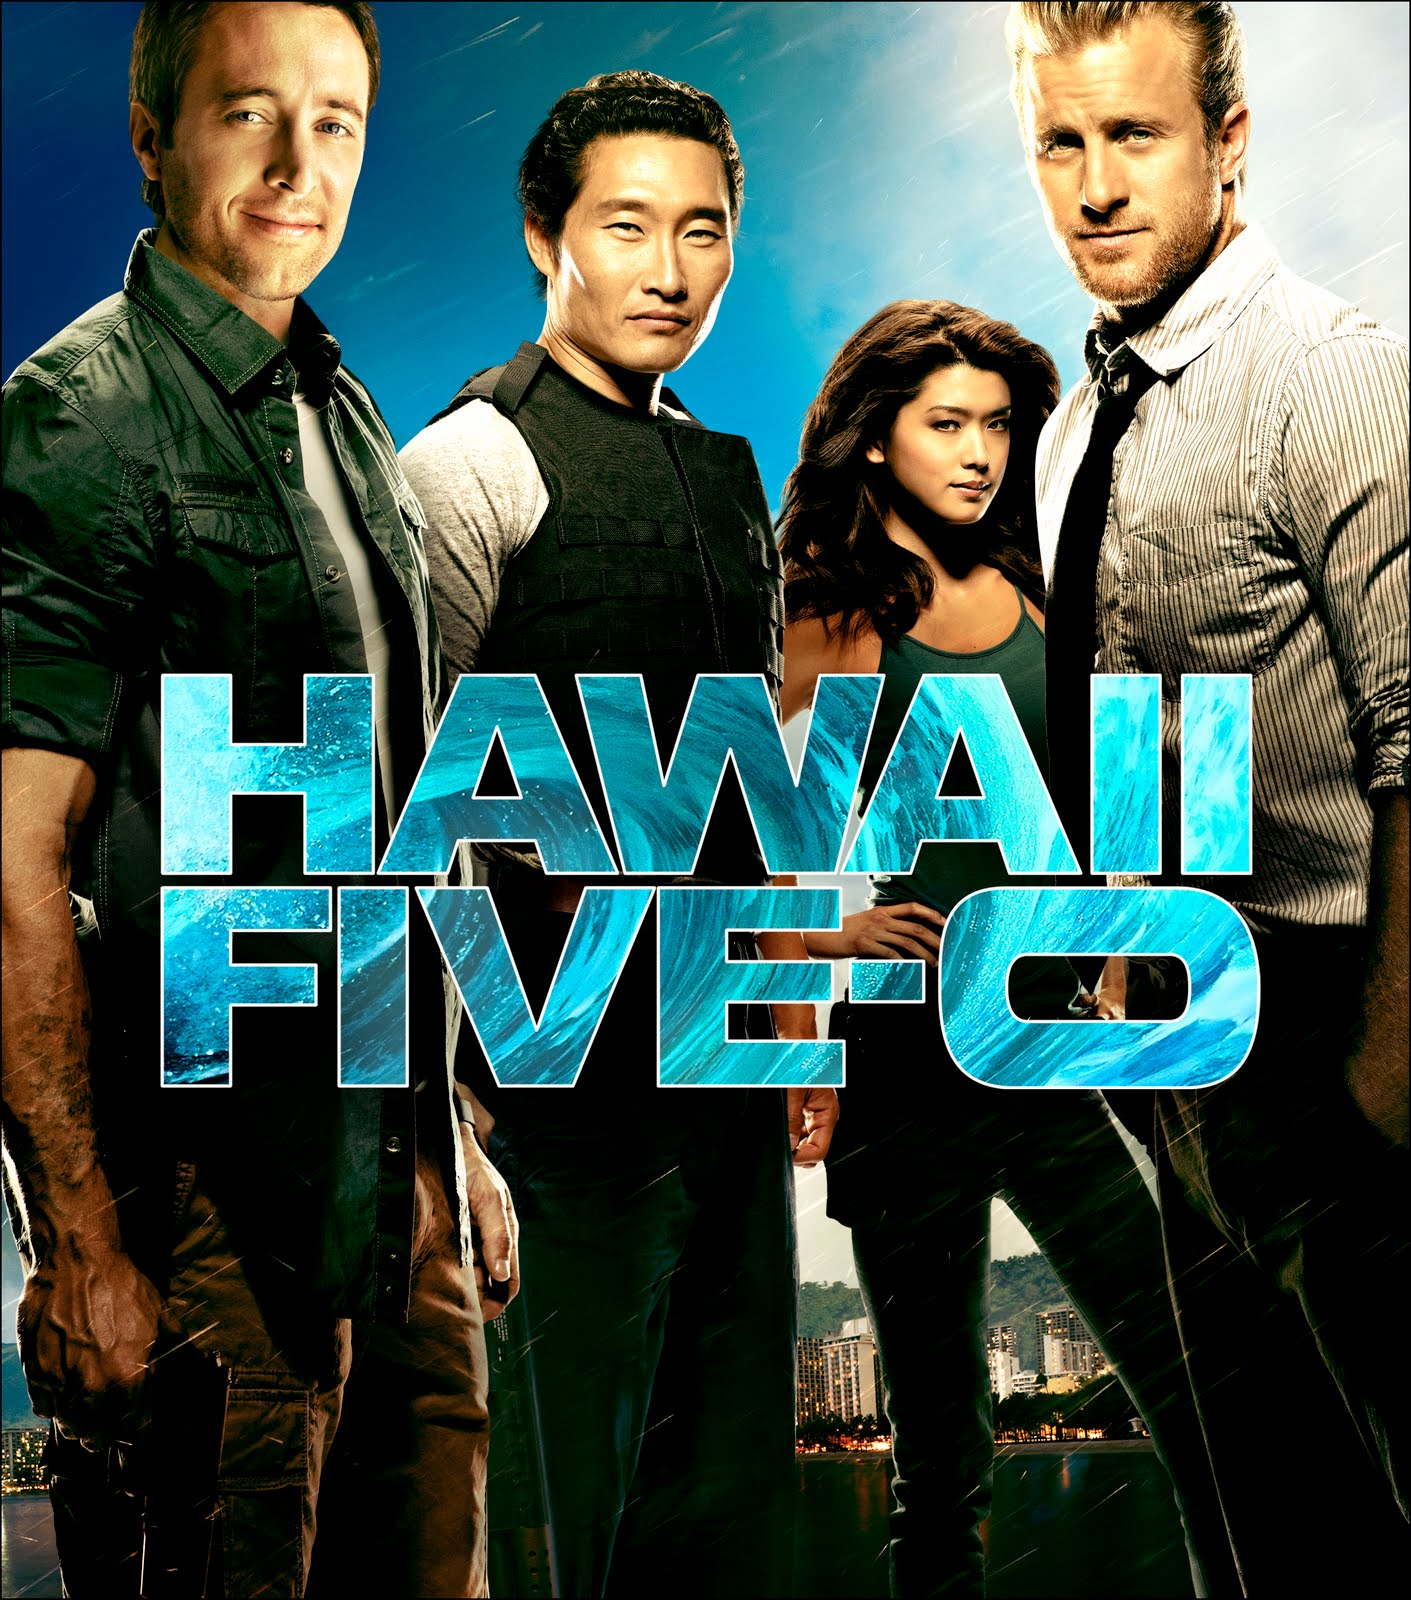 Hawaii Five-O - Season 2 - Keyart Photo